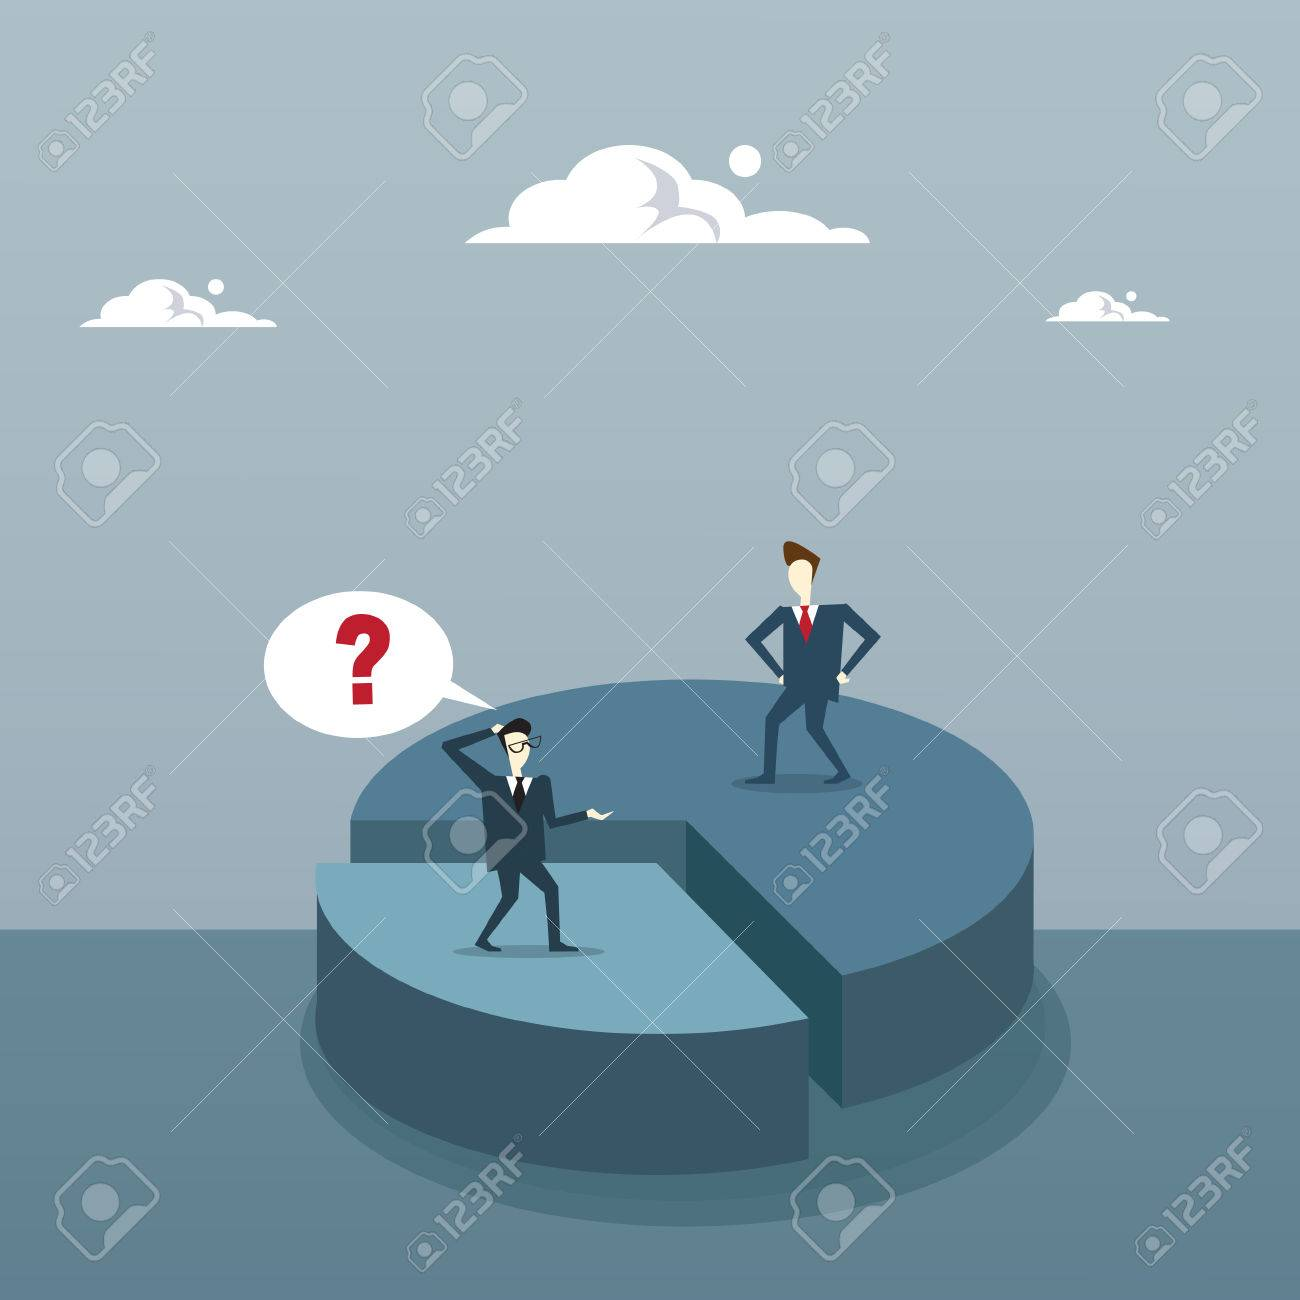 Two Business Men On Pie Diagram Getting Inequality Shares, Businessmen Competition Success Concept Flat Vector Illustration - 81922952